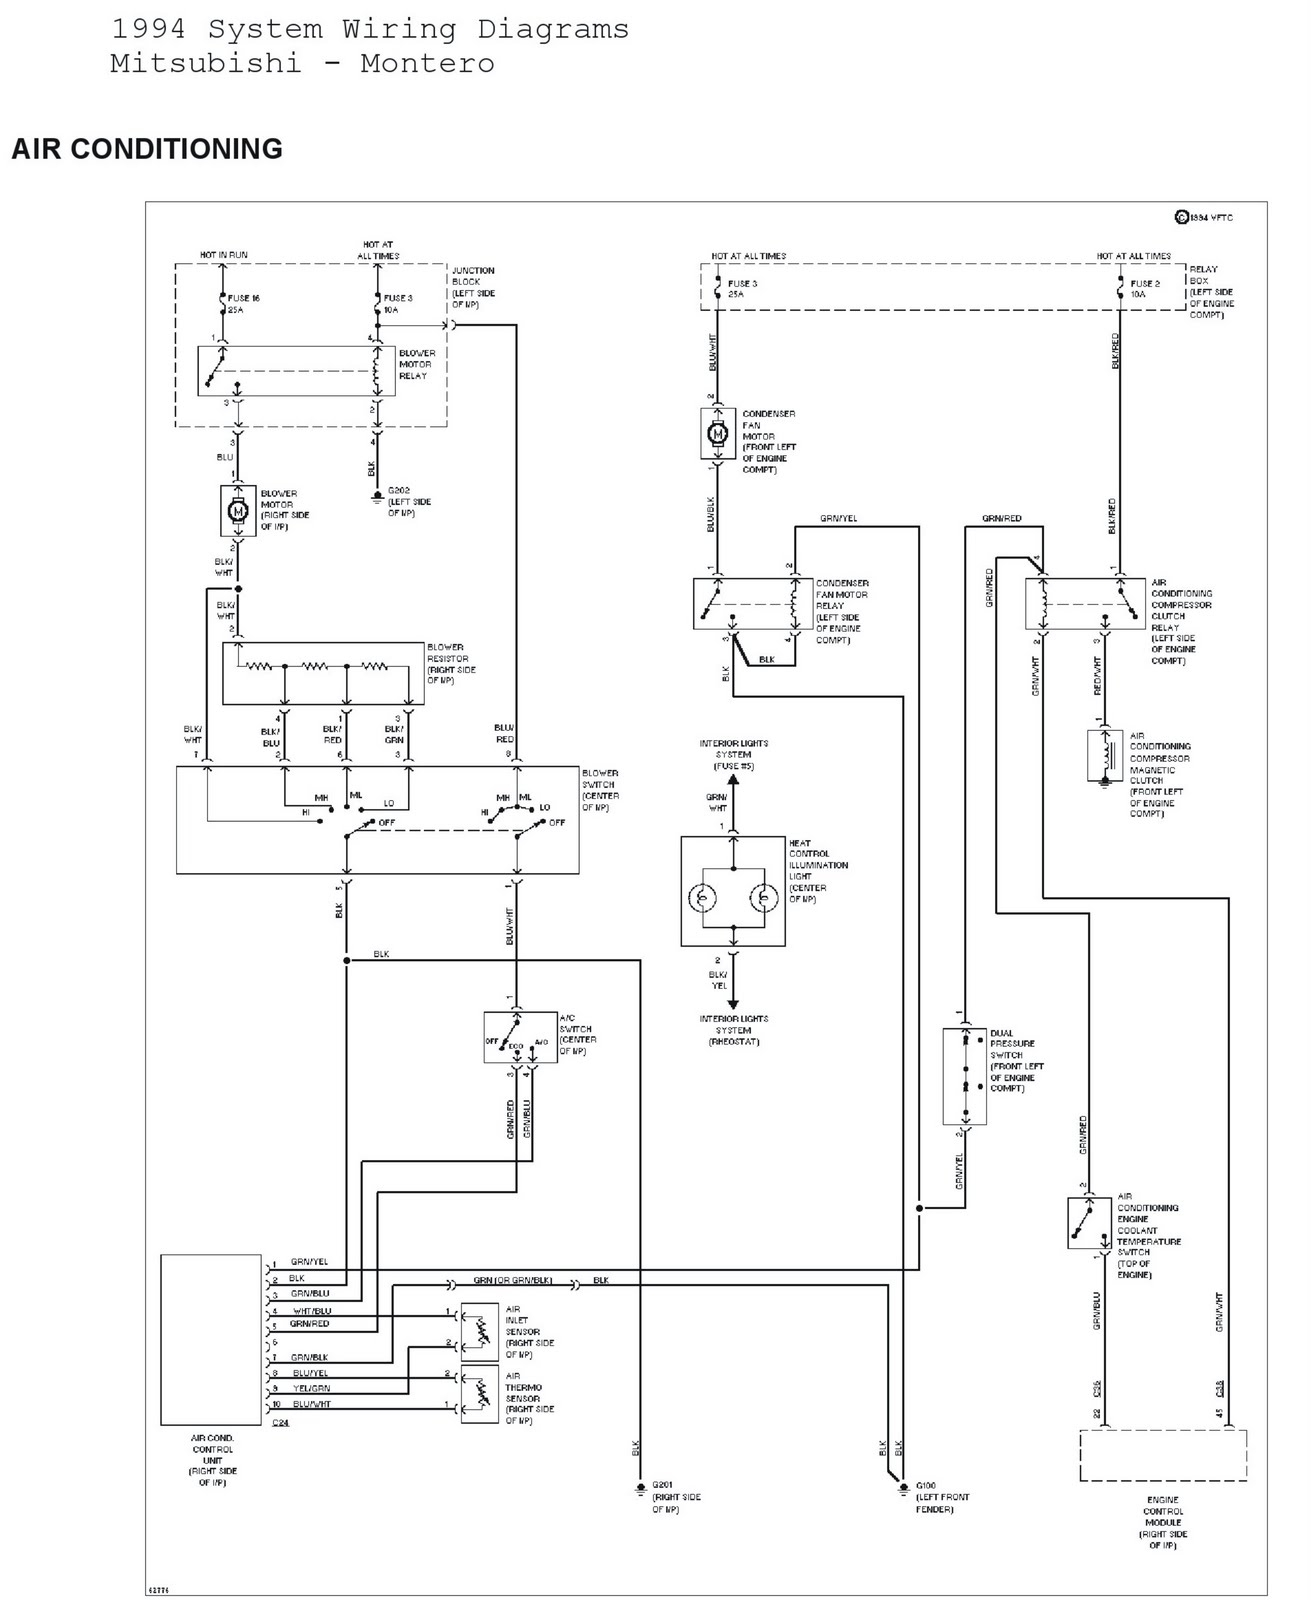 0001 mitsubishi air conditioner reviews malaysia mitsubishi mr slim wiring diagram at gsmportal.co